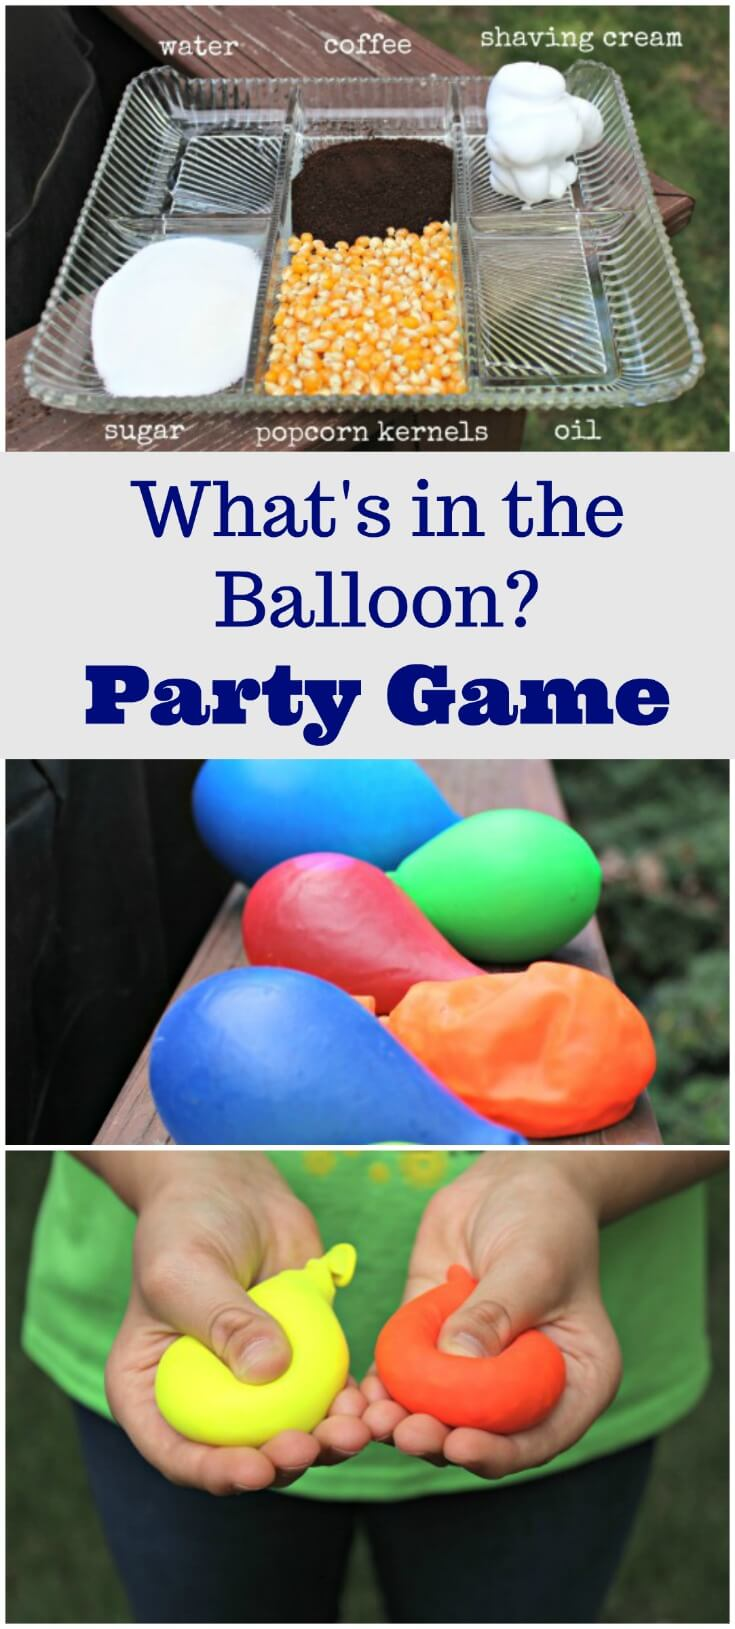 Party Game with Balloons